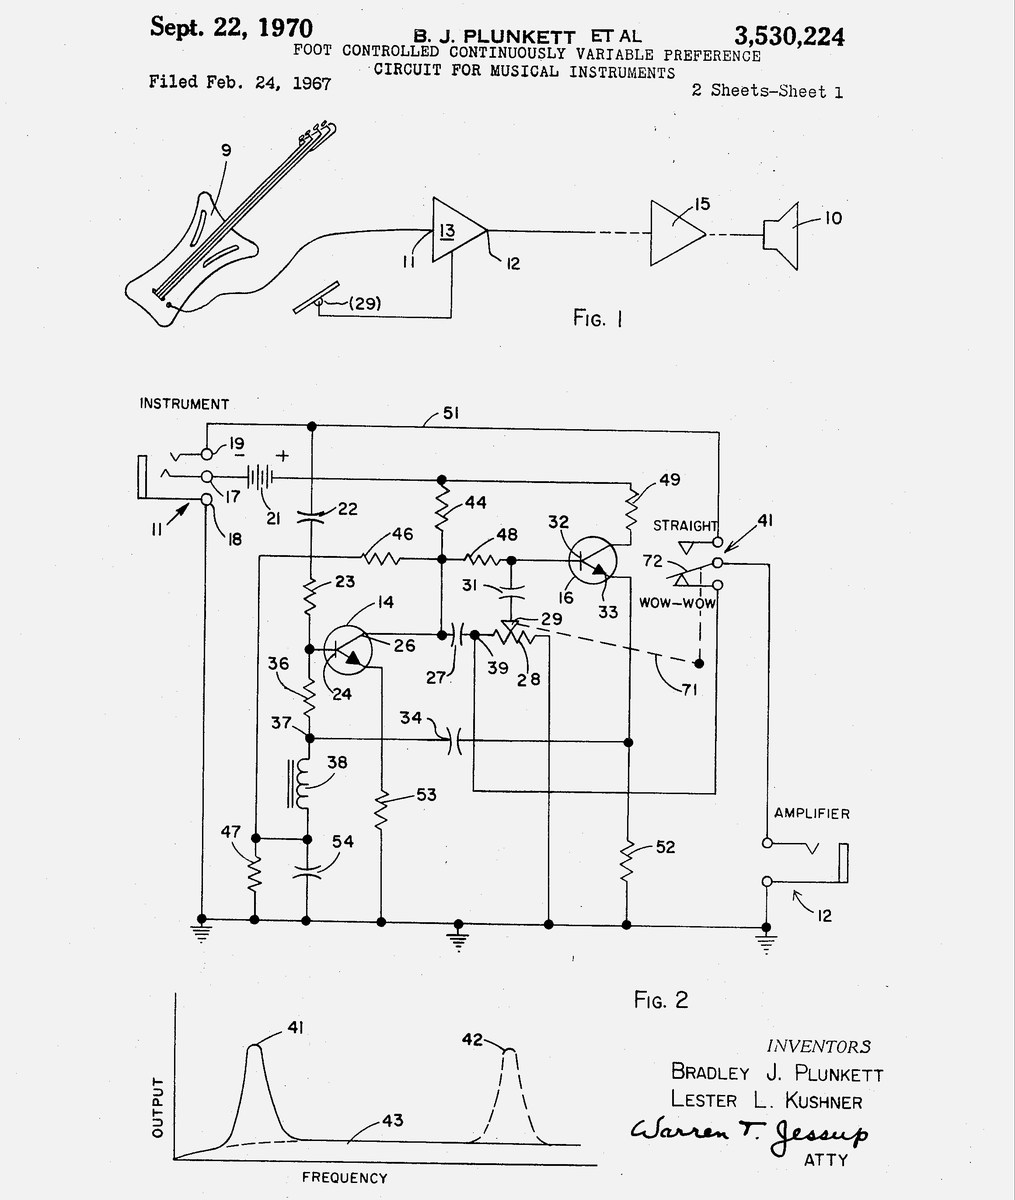 The Old Reader Wah Schematic In Addition Volume Pedal On Dunlop Patent For Secured 1970 Came A Little Too Late Google Patents